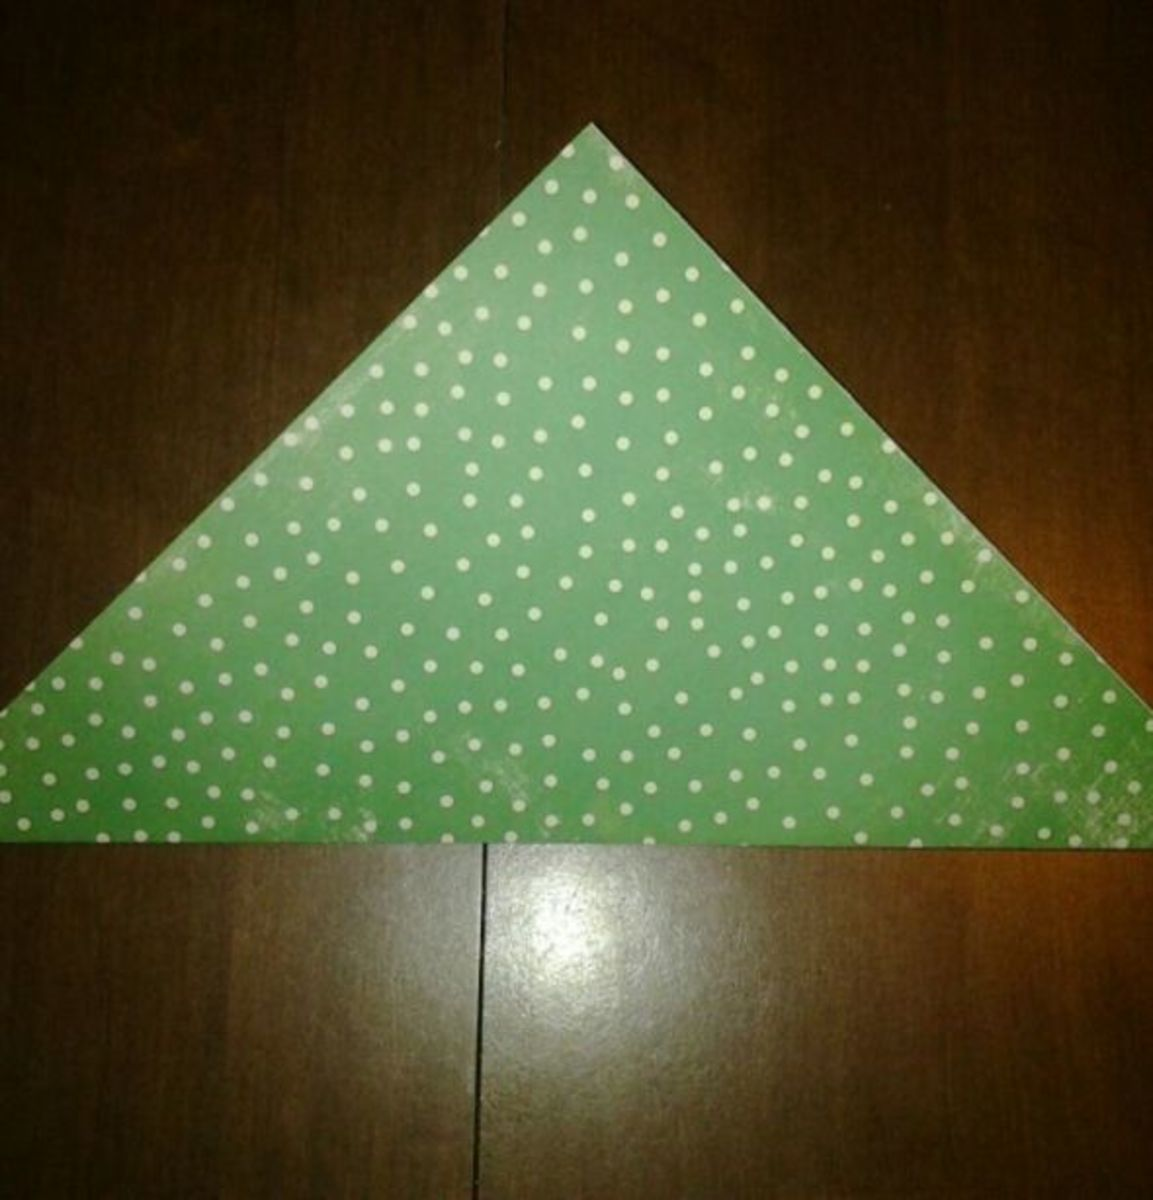 2. Fold the paper diagonally once (corner to corner).